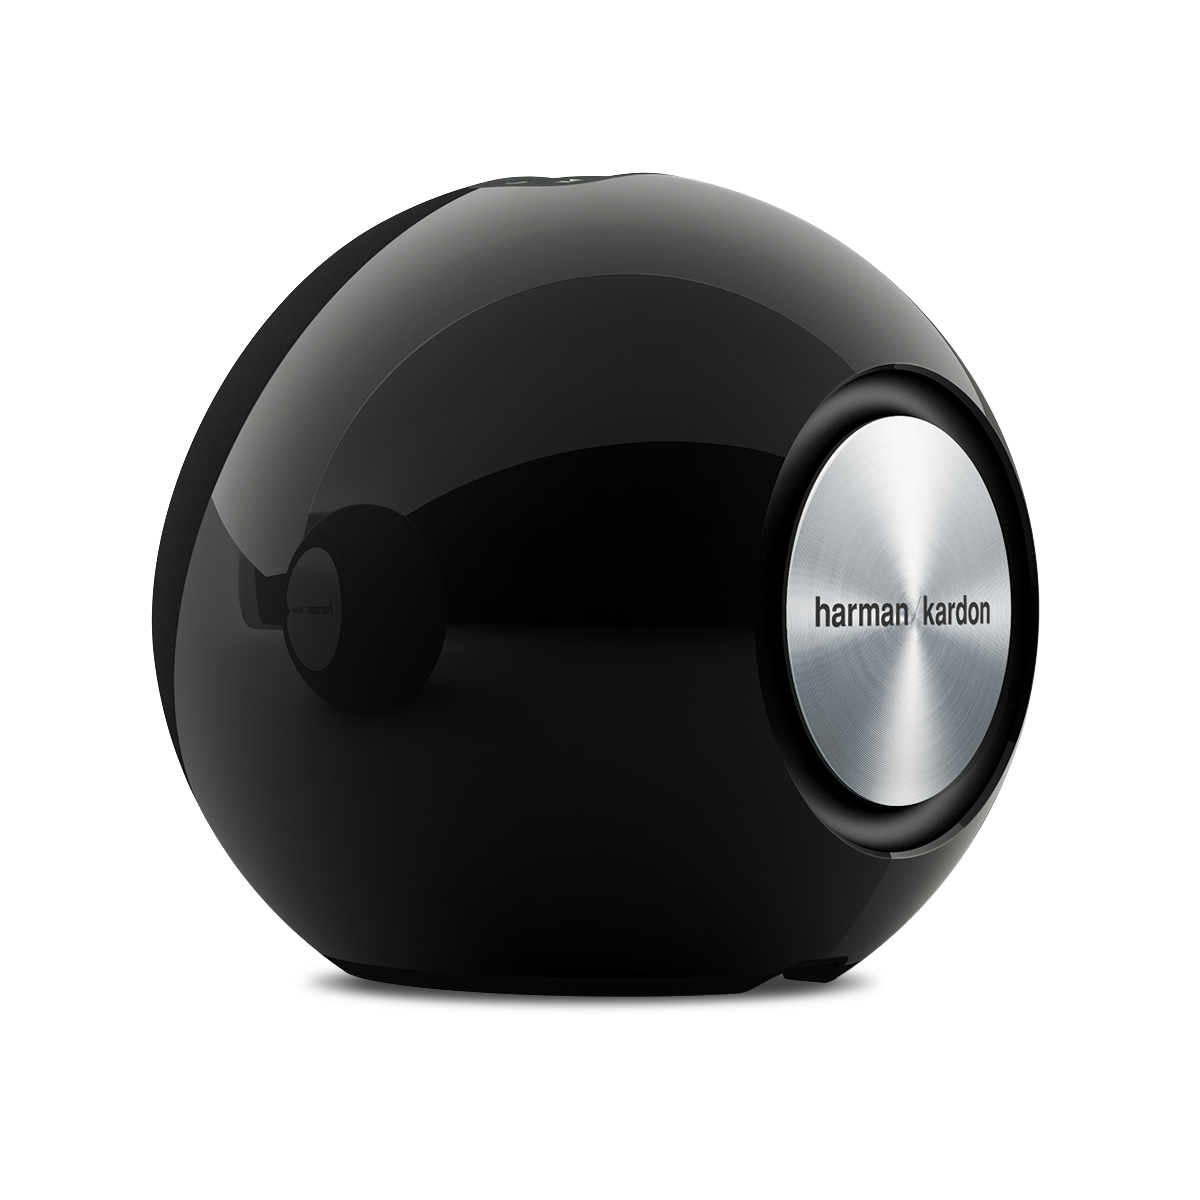 harman kardon omni 10 noir dock enceinte bluetooth. Black Bedroom Furniture Sets. Home Design Ideas